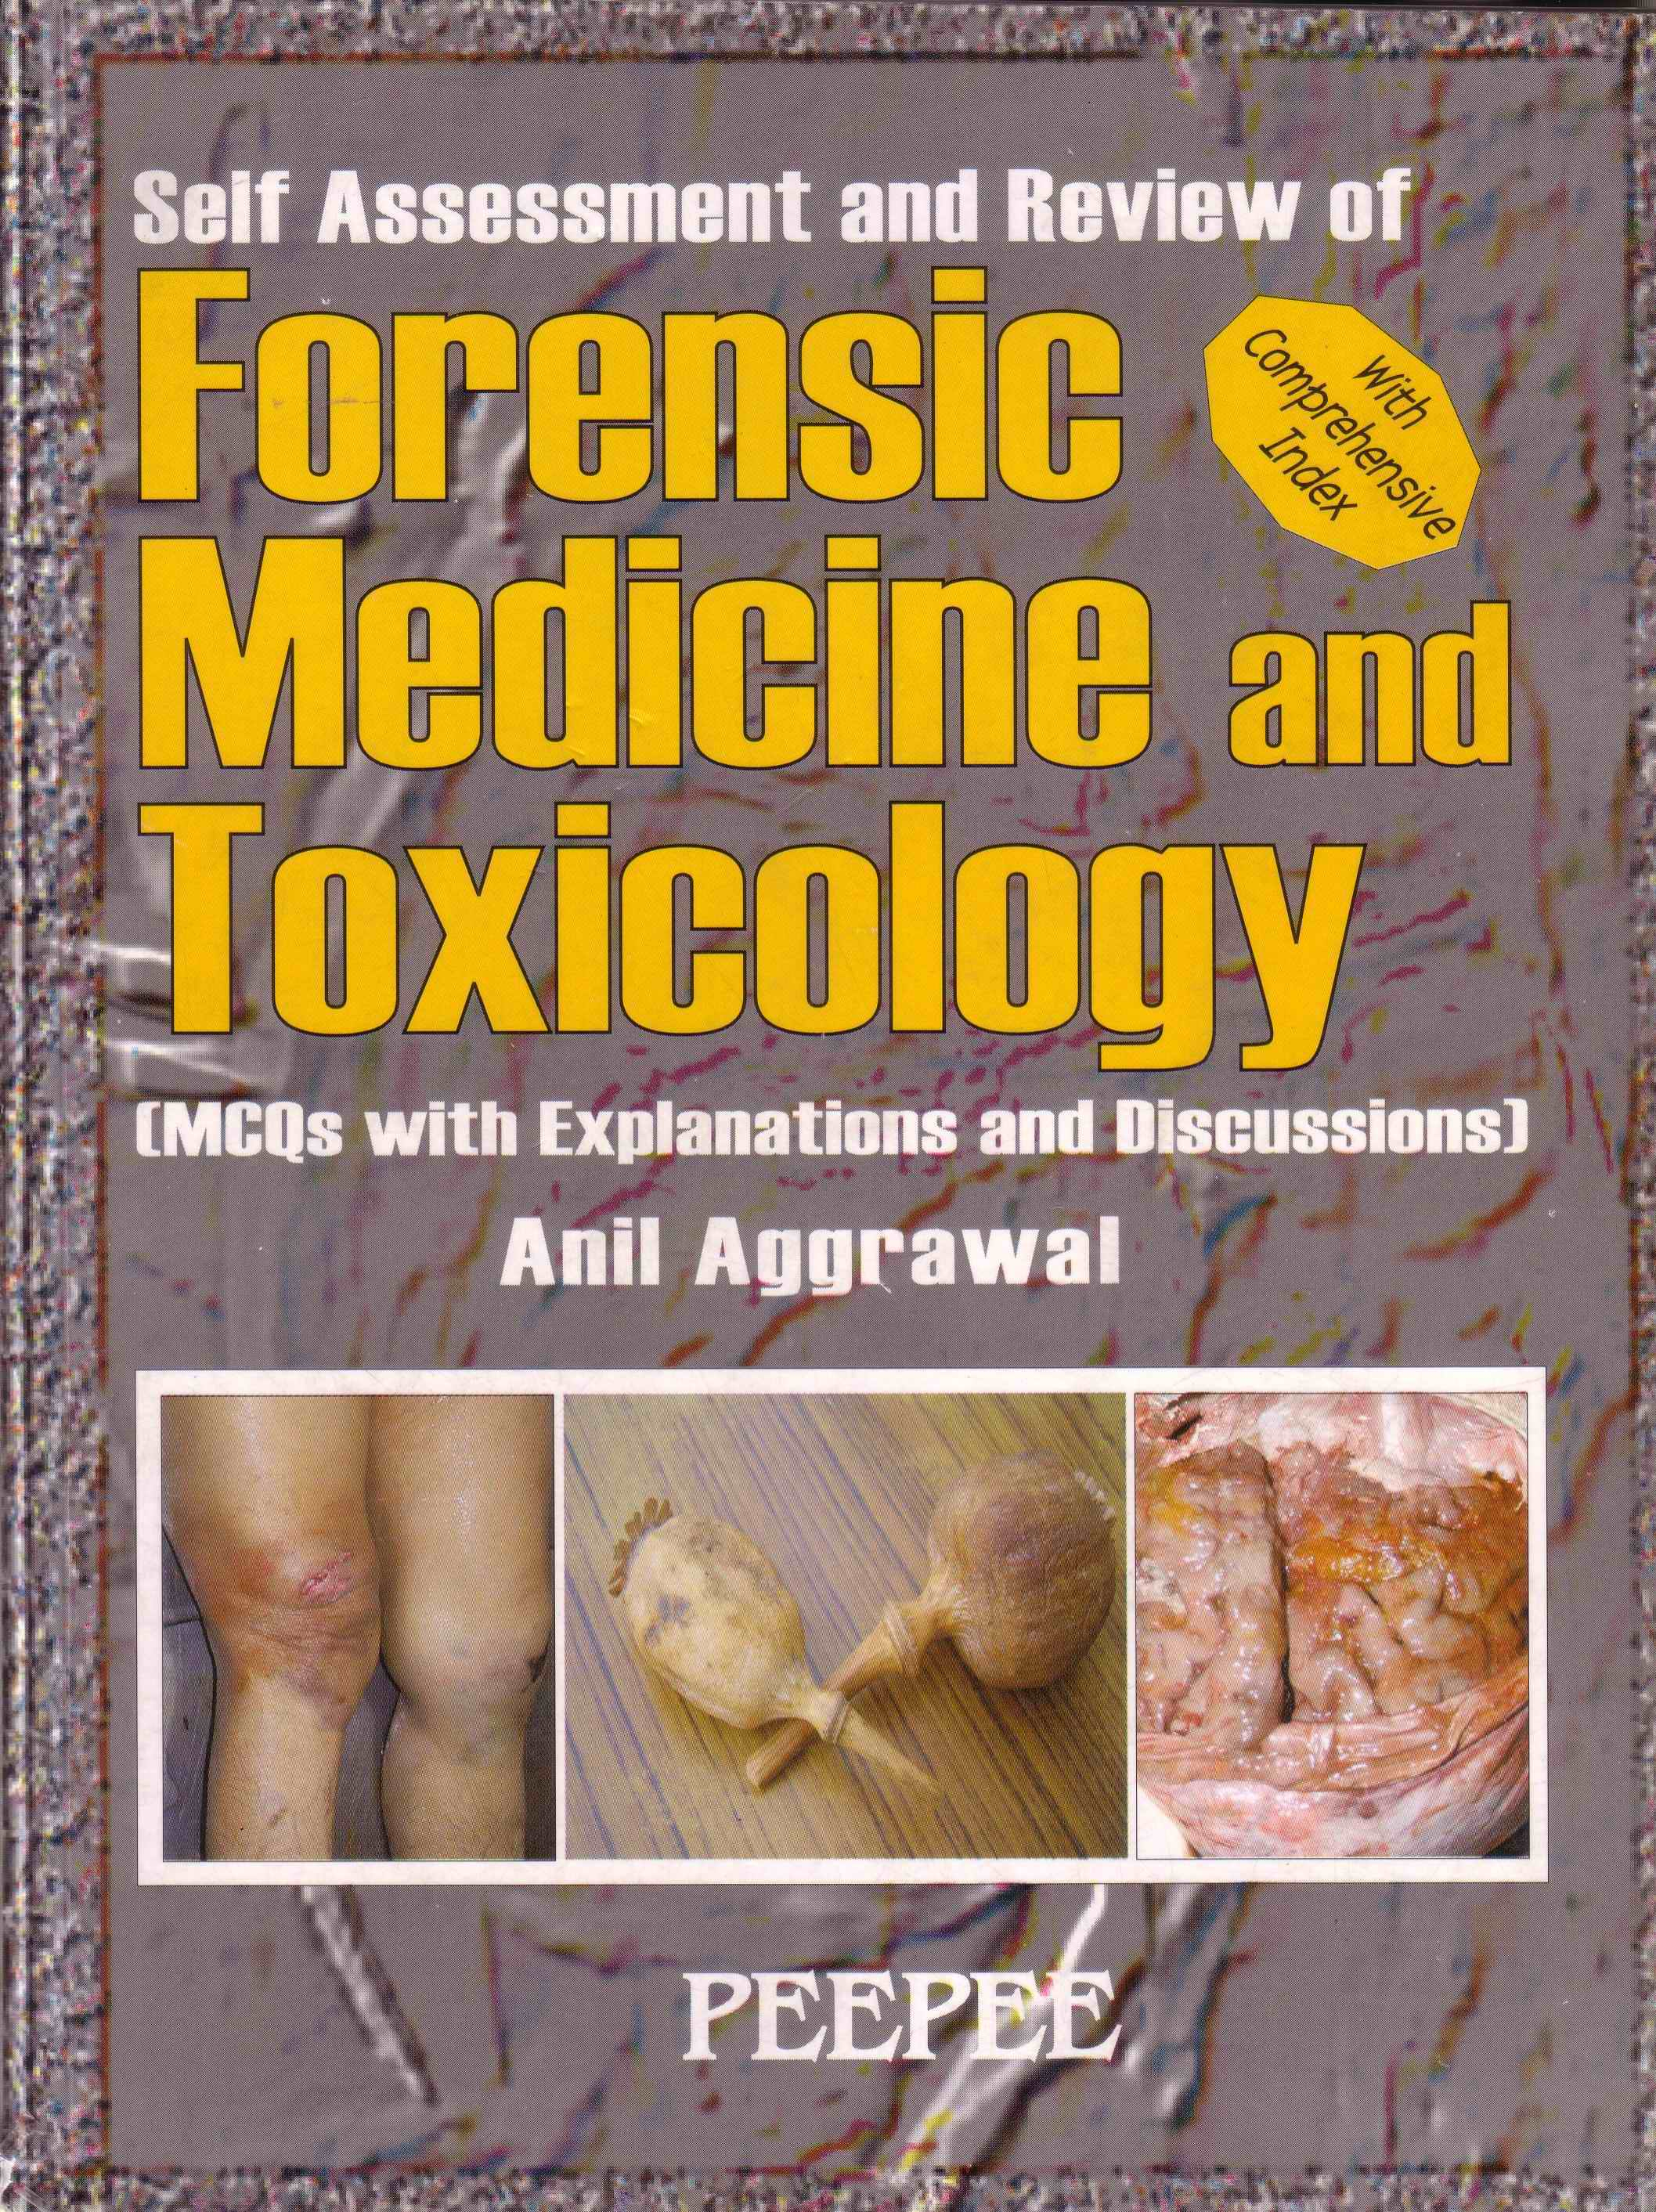 Anil Aggrawals Internet Journal of Forensic Medicine Vol